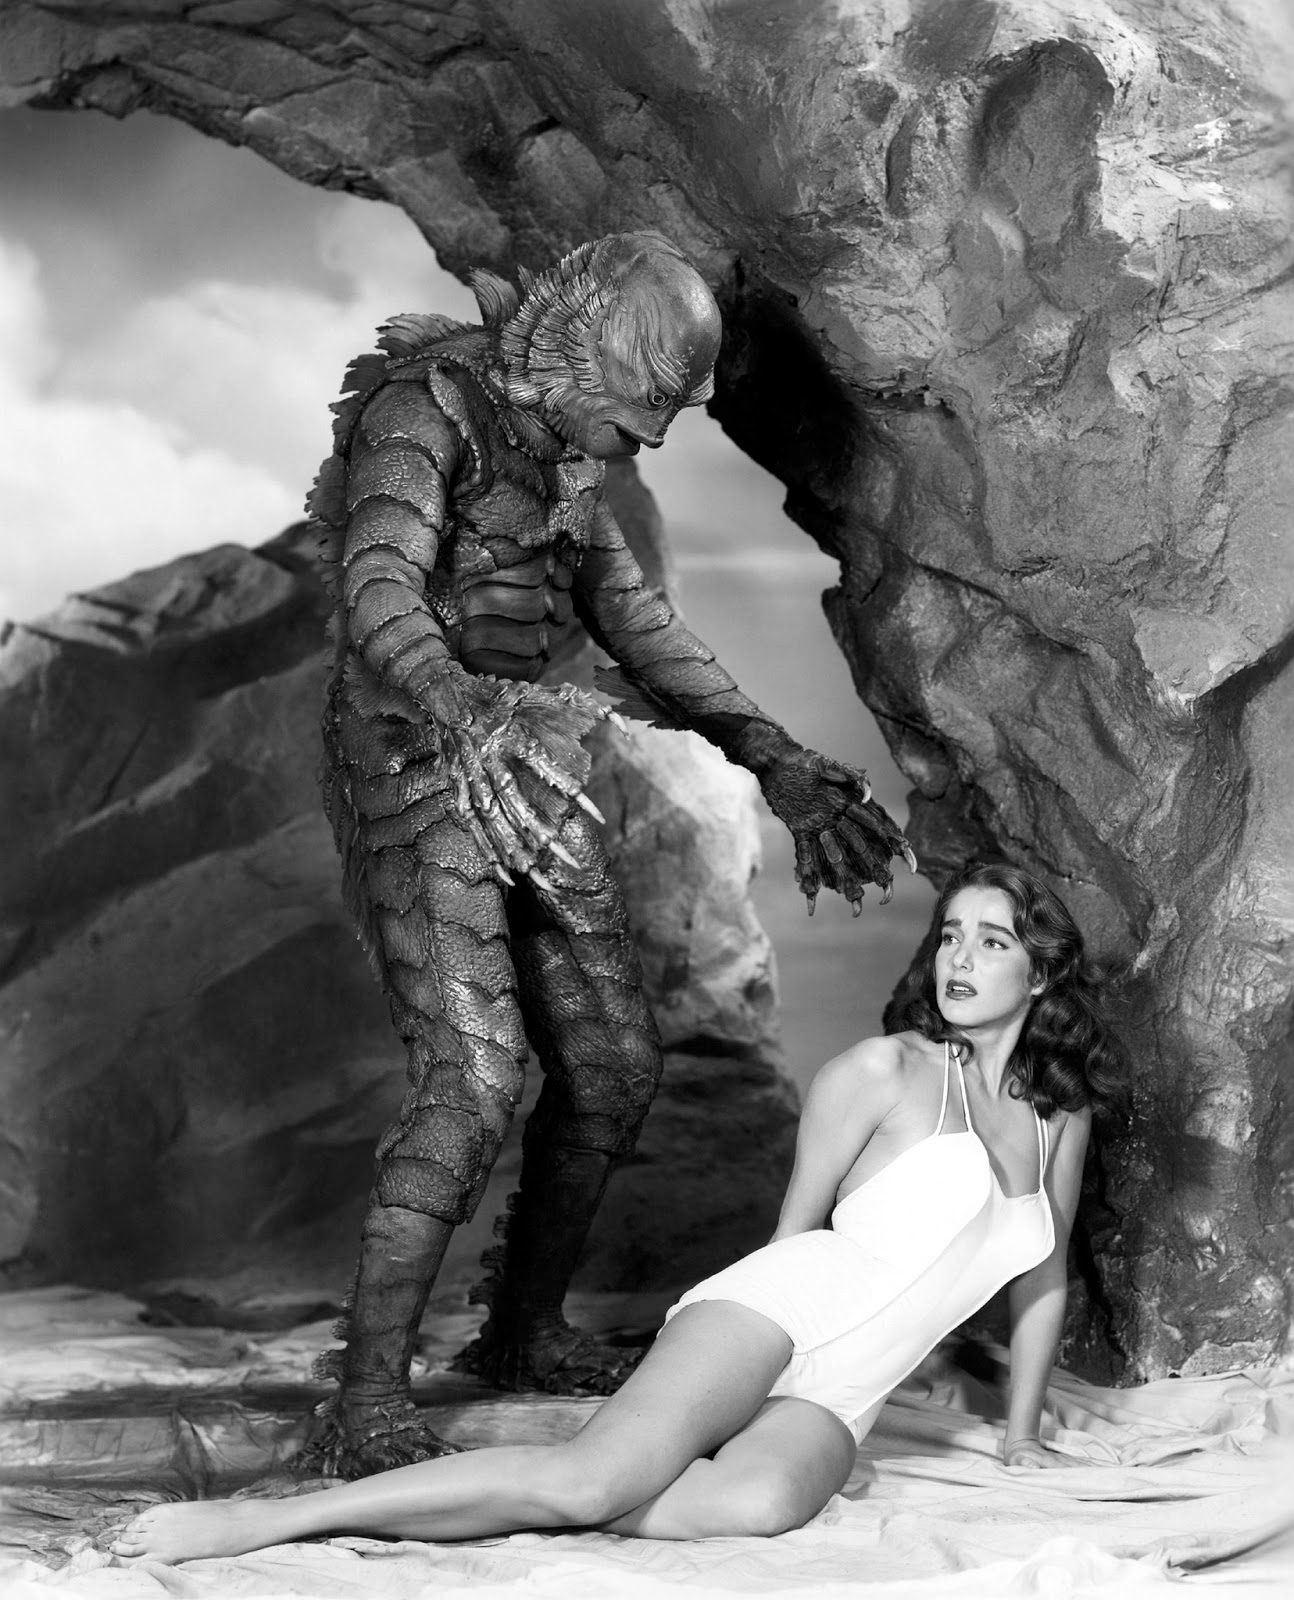 history of science fiction cinema: 1954: the year of the big bugs